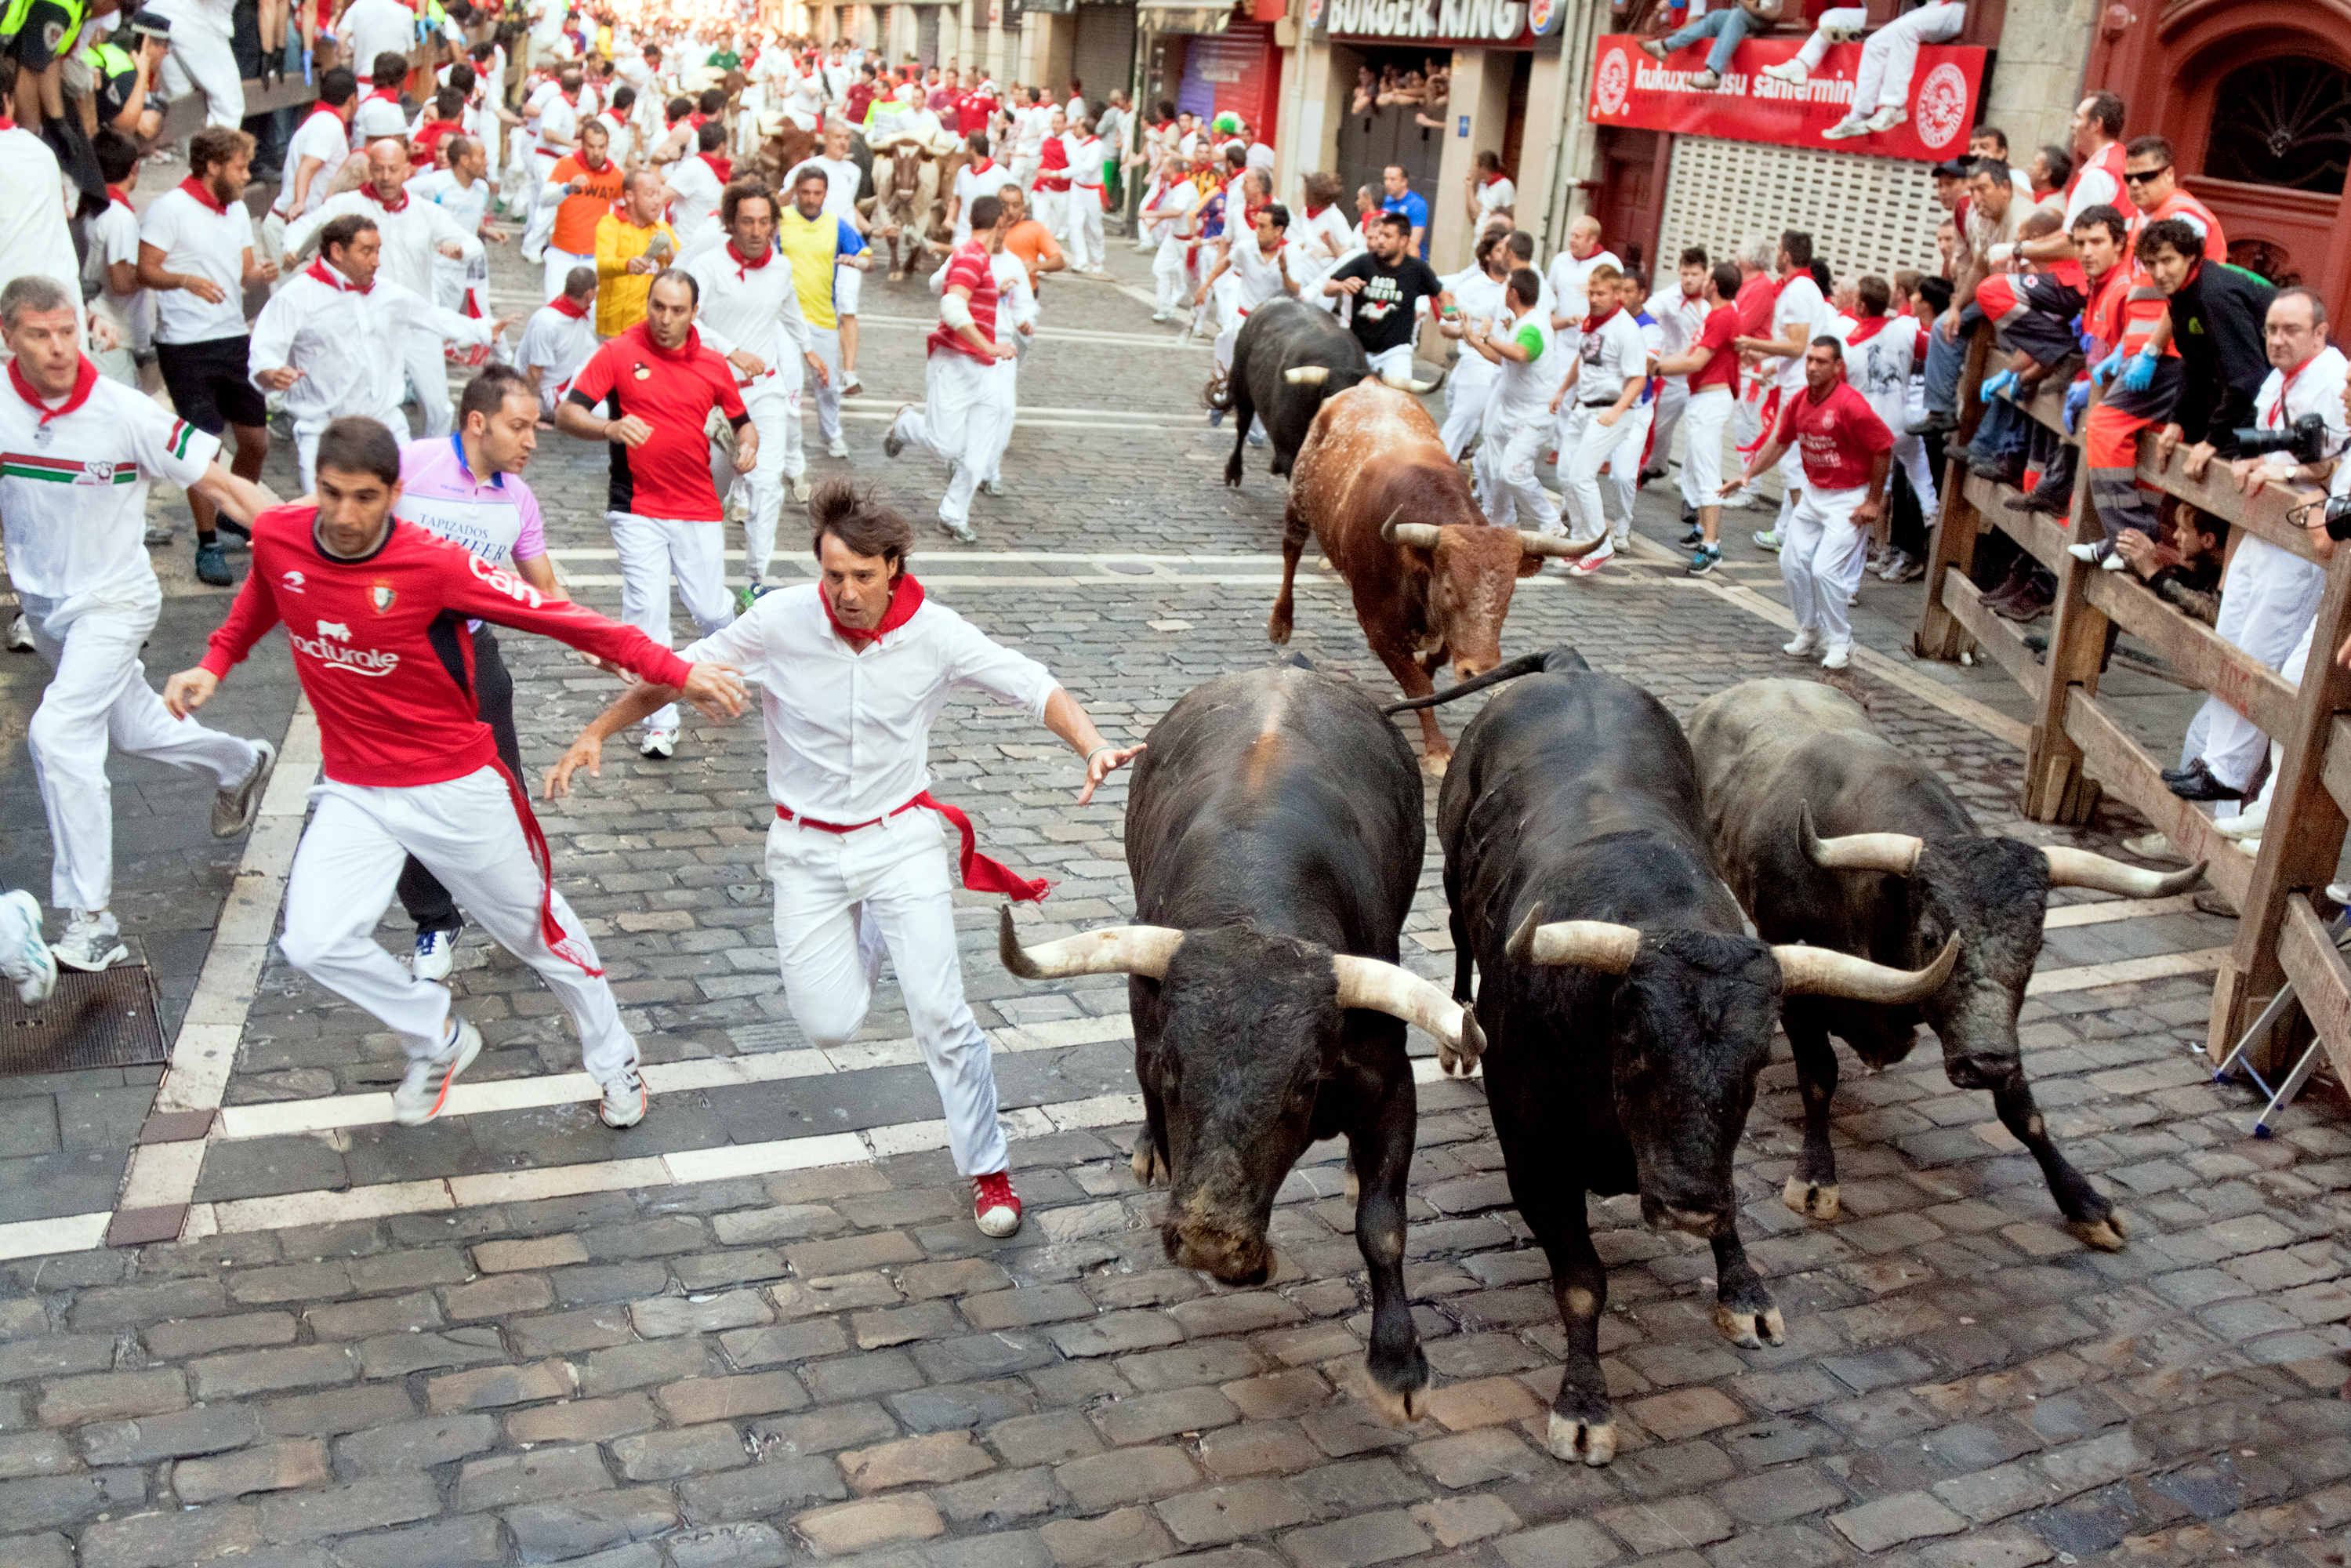 At festival of San Fermin. Pamplona